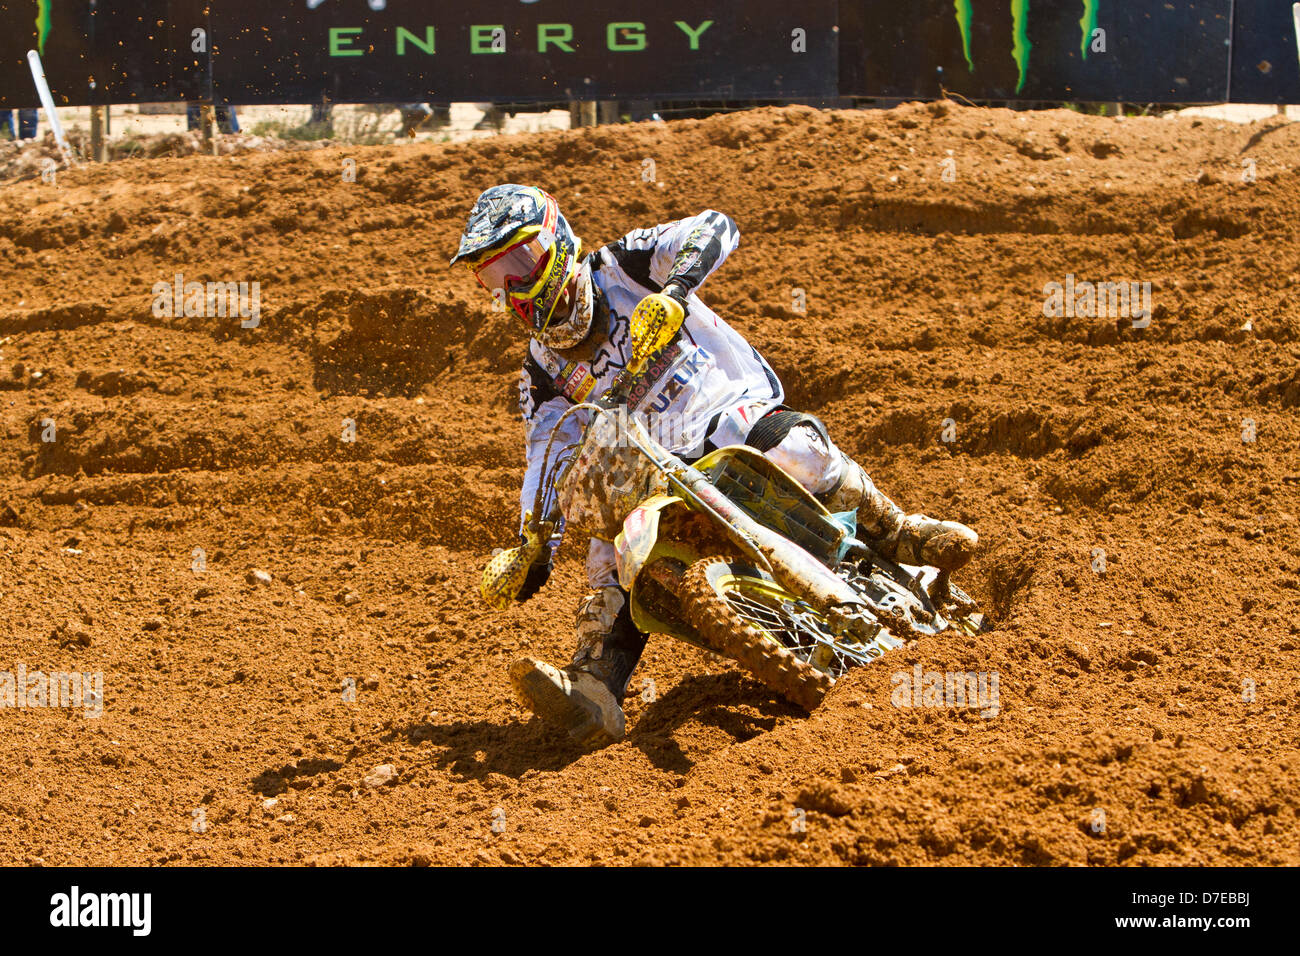 agueda, Portugal, 5th May 2013, World Championship MX1, Belgian Clement Desalle with a Suzuki 2nd race 1 and was Stock Photo